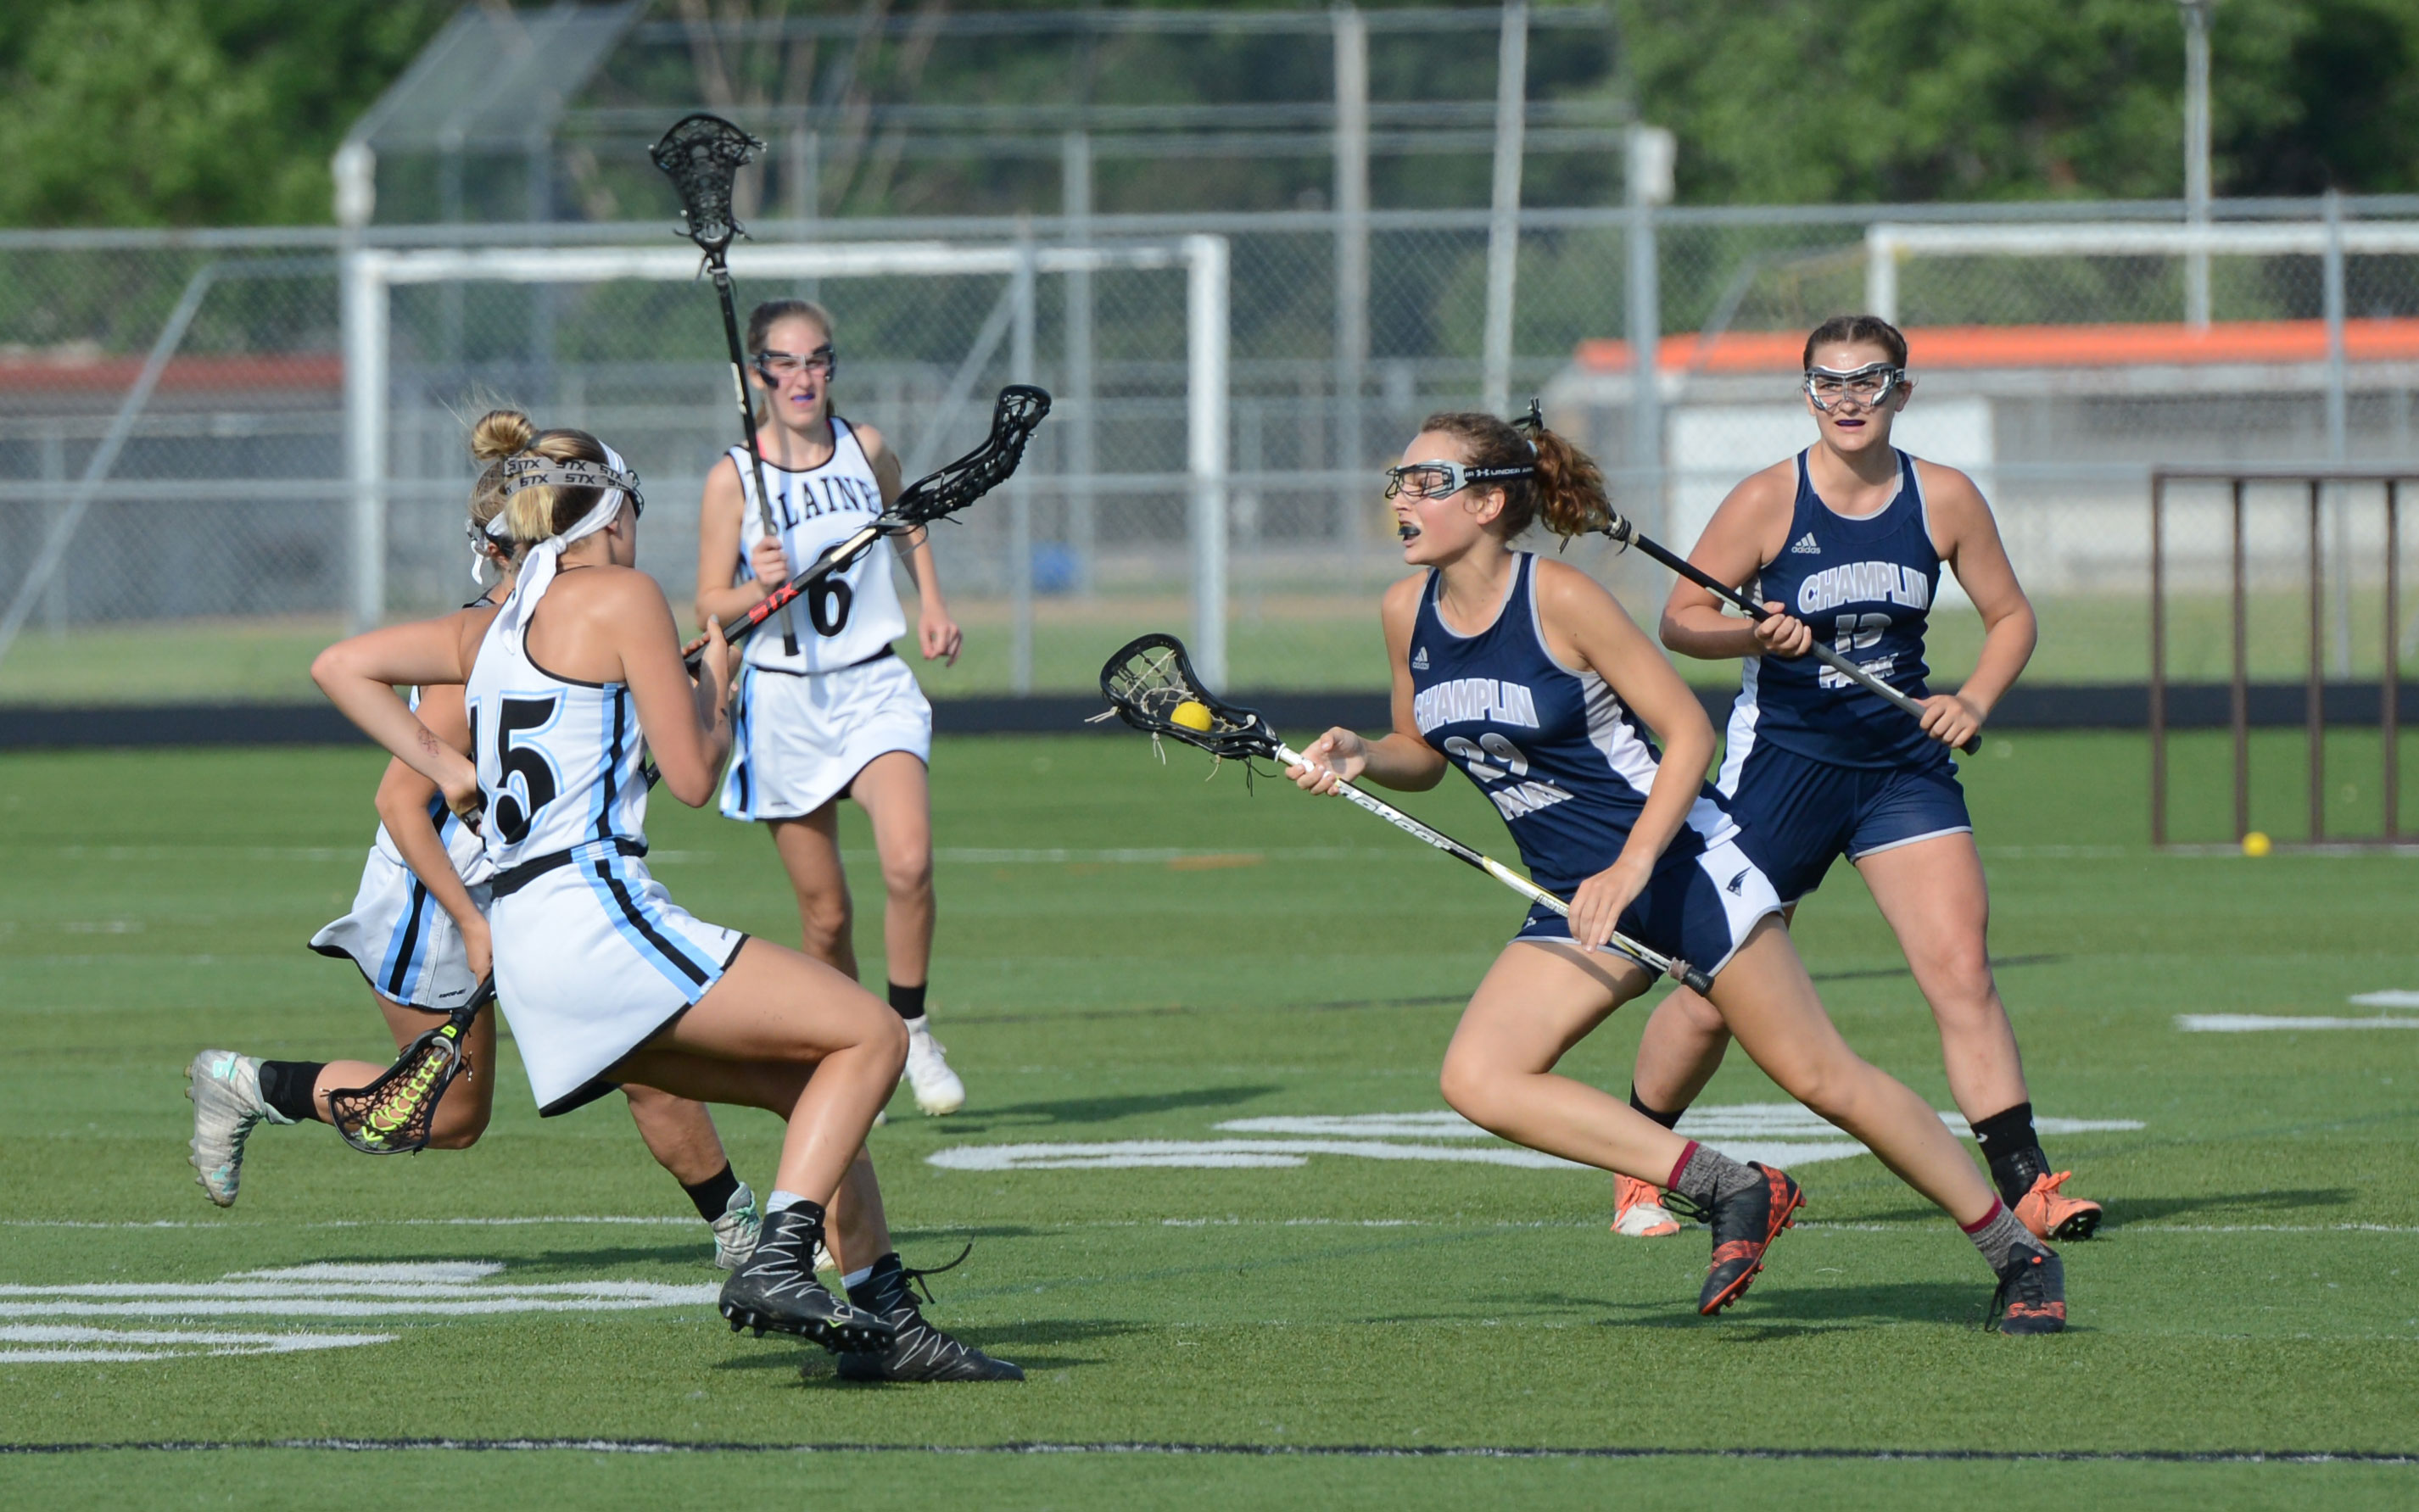 Champlin Park midfielder Lydia Brecht darts up the field against Blaine in the Section 7 championship at Osseo High School on Wednesday. Photo by Carter Jones, SportsEngine